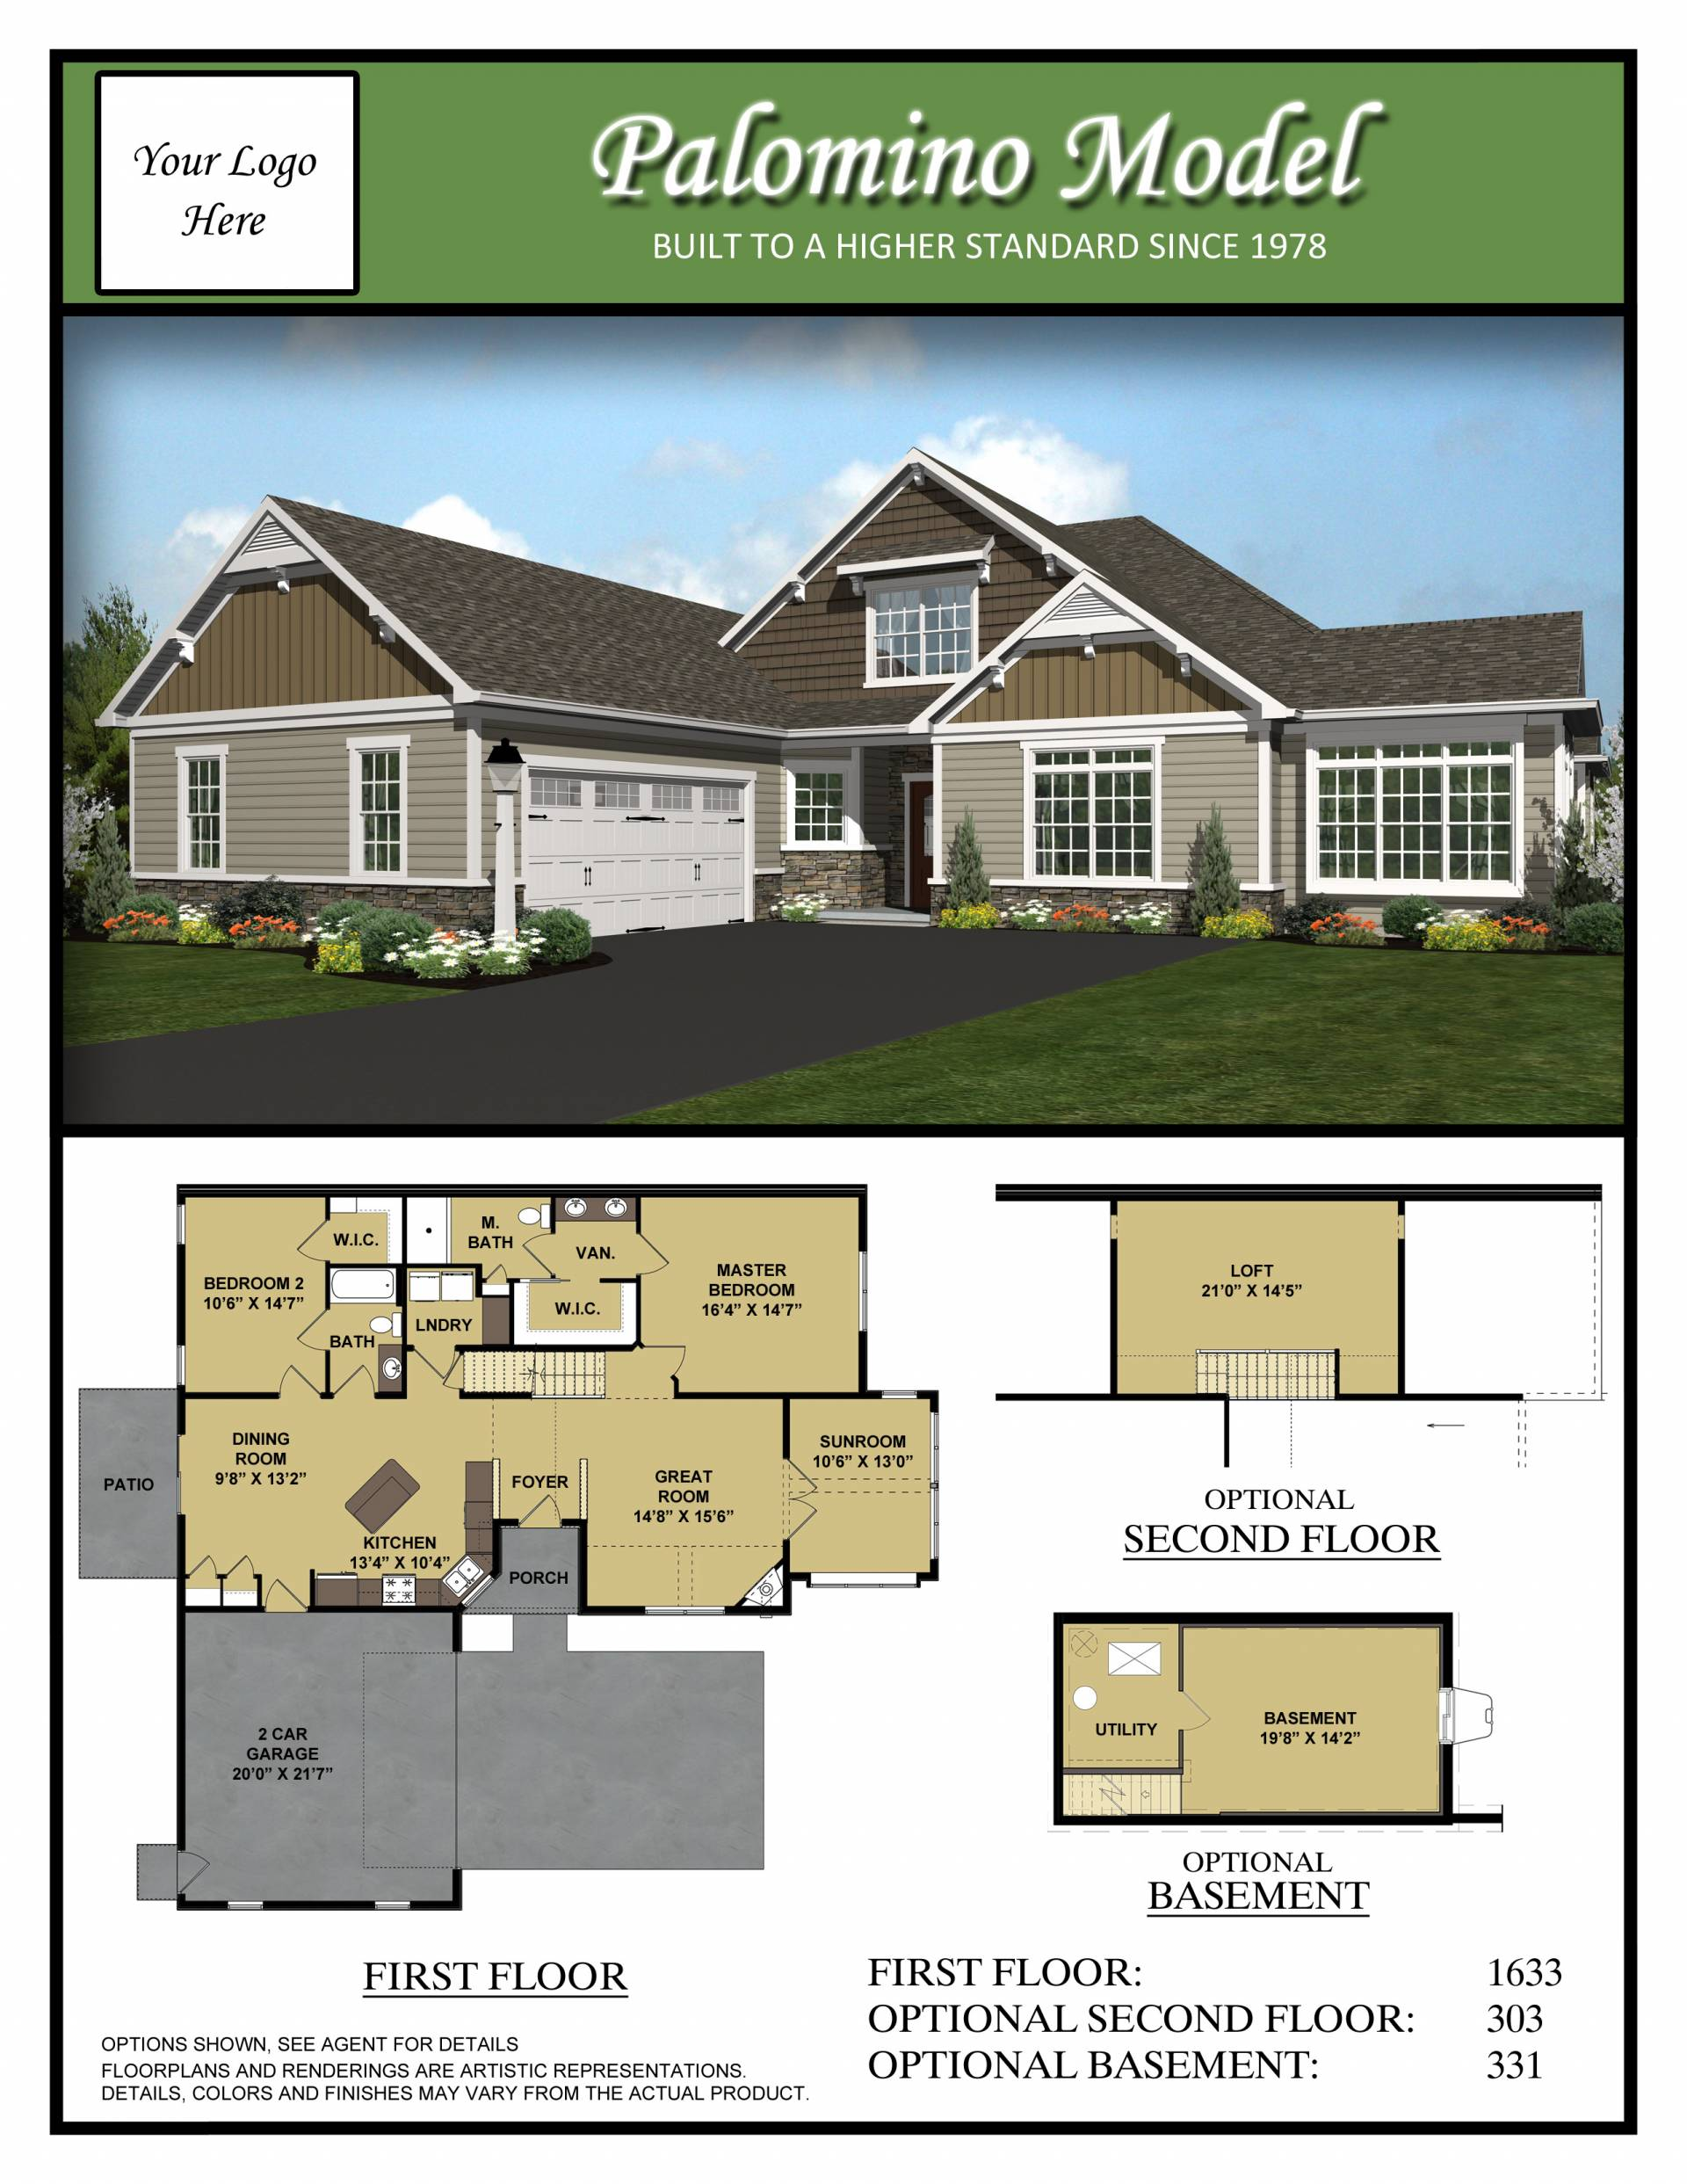 builder planning services home plans amp drafting home plans in lititz pa quality design amp drafting services